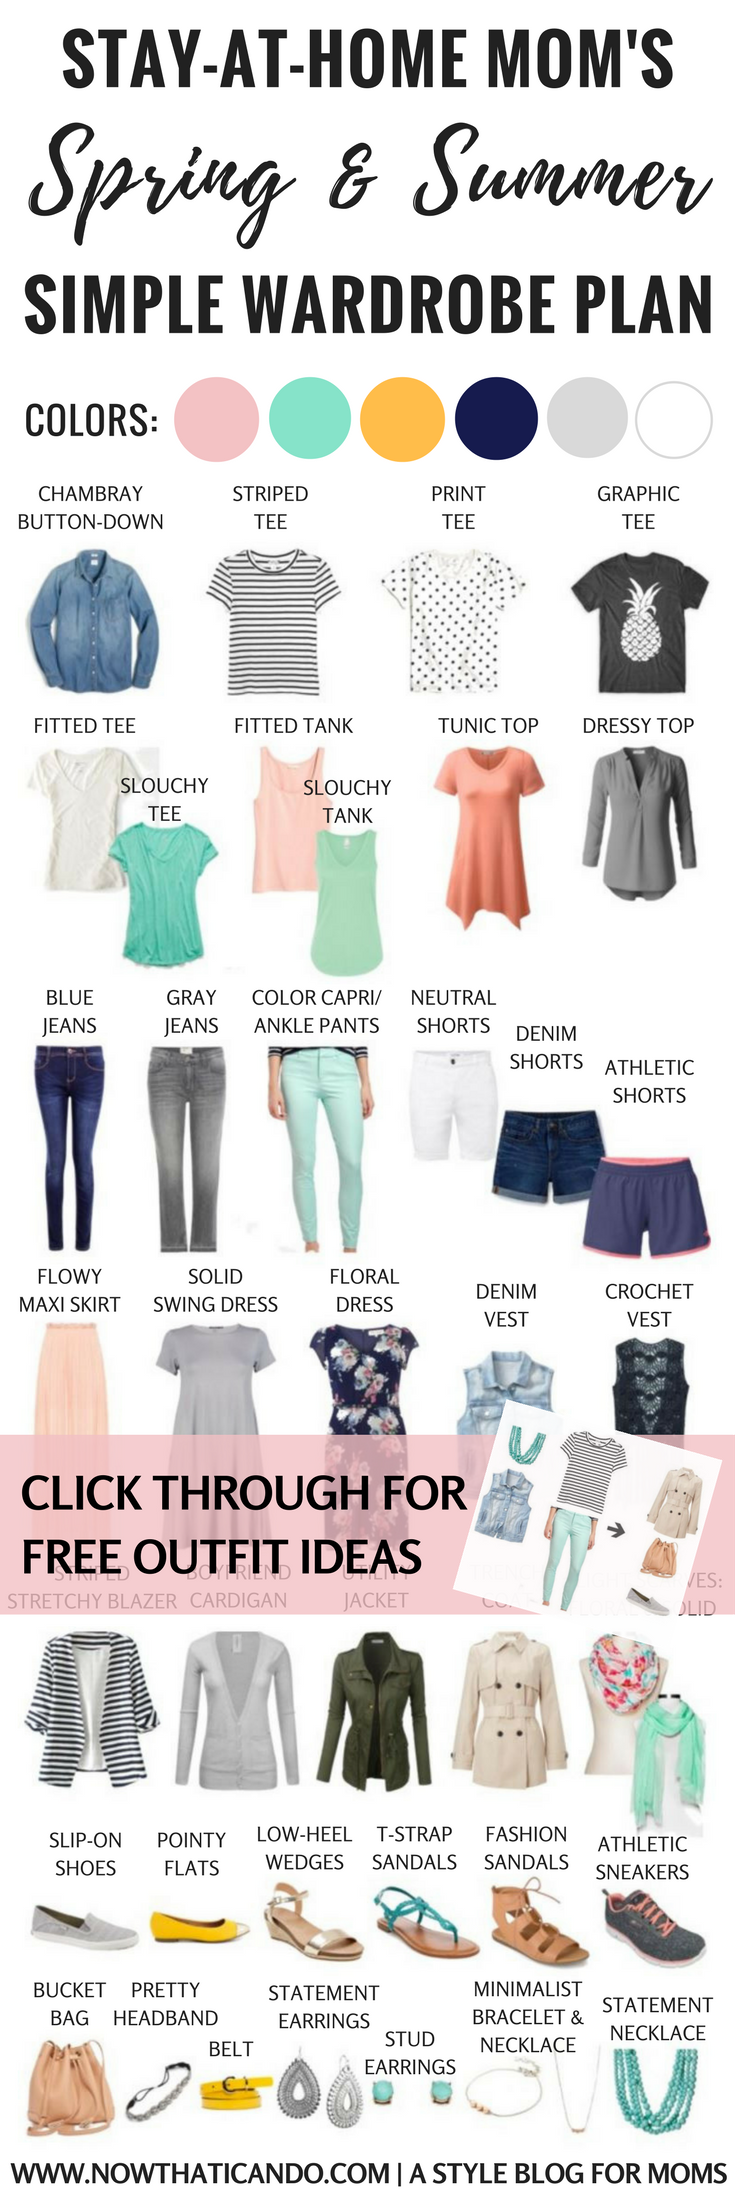 Stay-at-home mom needing ideas for a flexibly stylish but comfortable spring & summer wardrobe? Check out this simple ensemble that creates over 86 outfits to keep you looking un-frumpy all season! Click through for graphics and printables